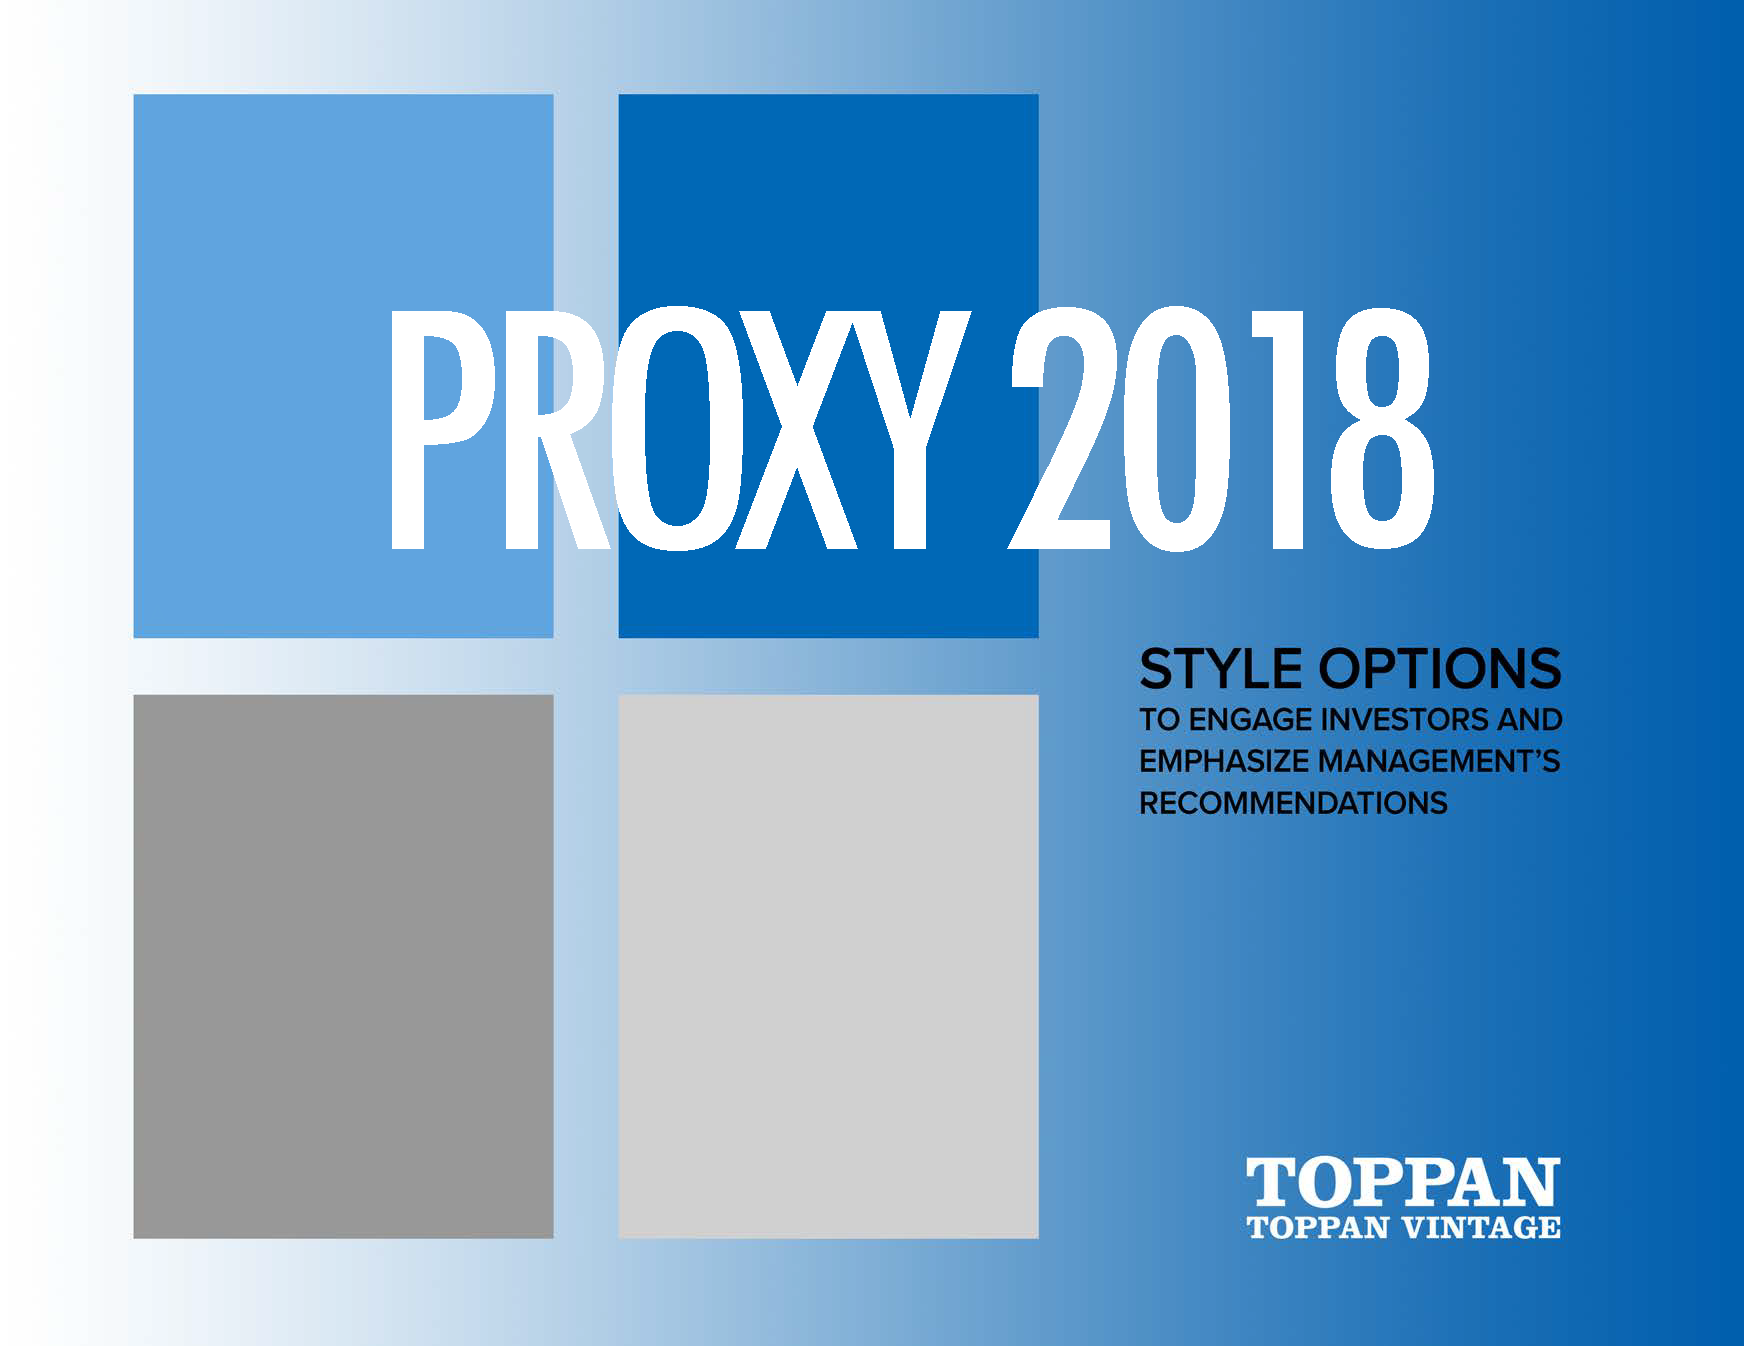 ProxyStyleGuide2018_Page_1-1.png